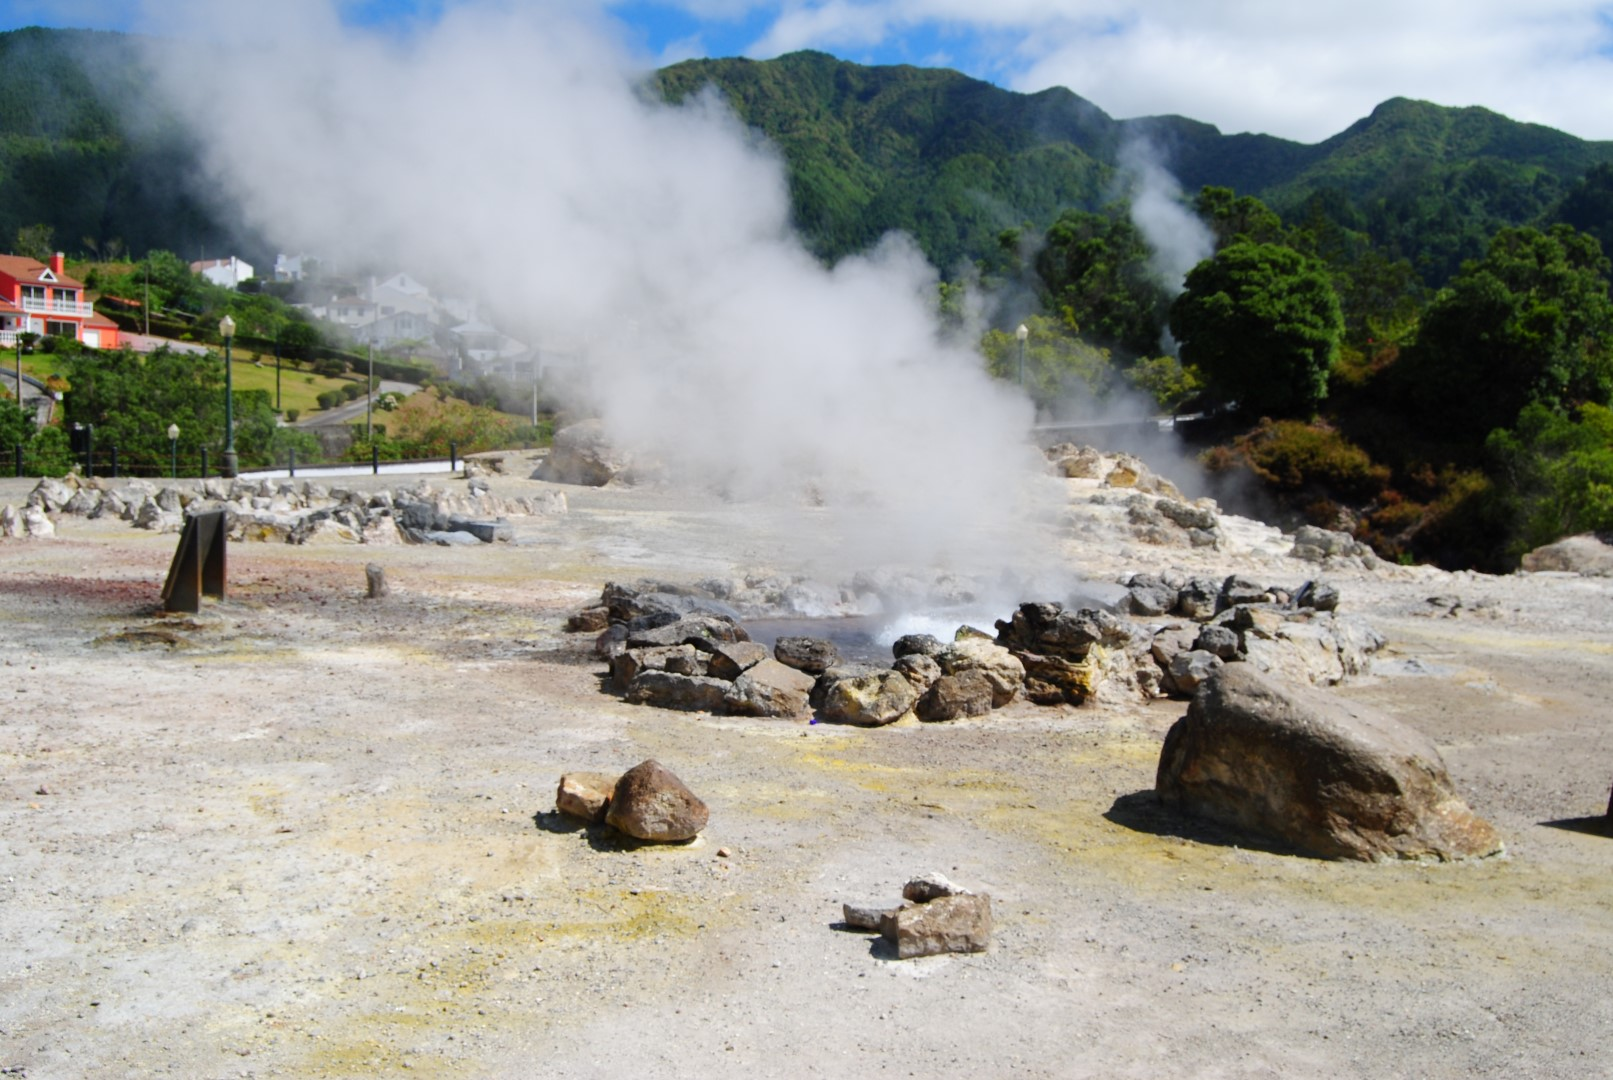 Caldeiras at Furnas village (Fumaroles)